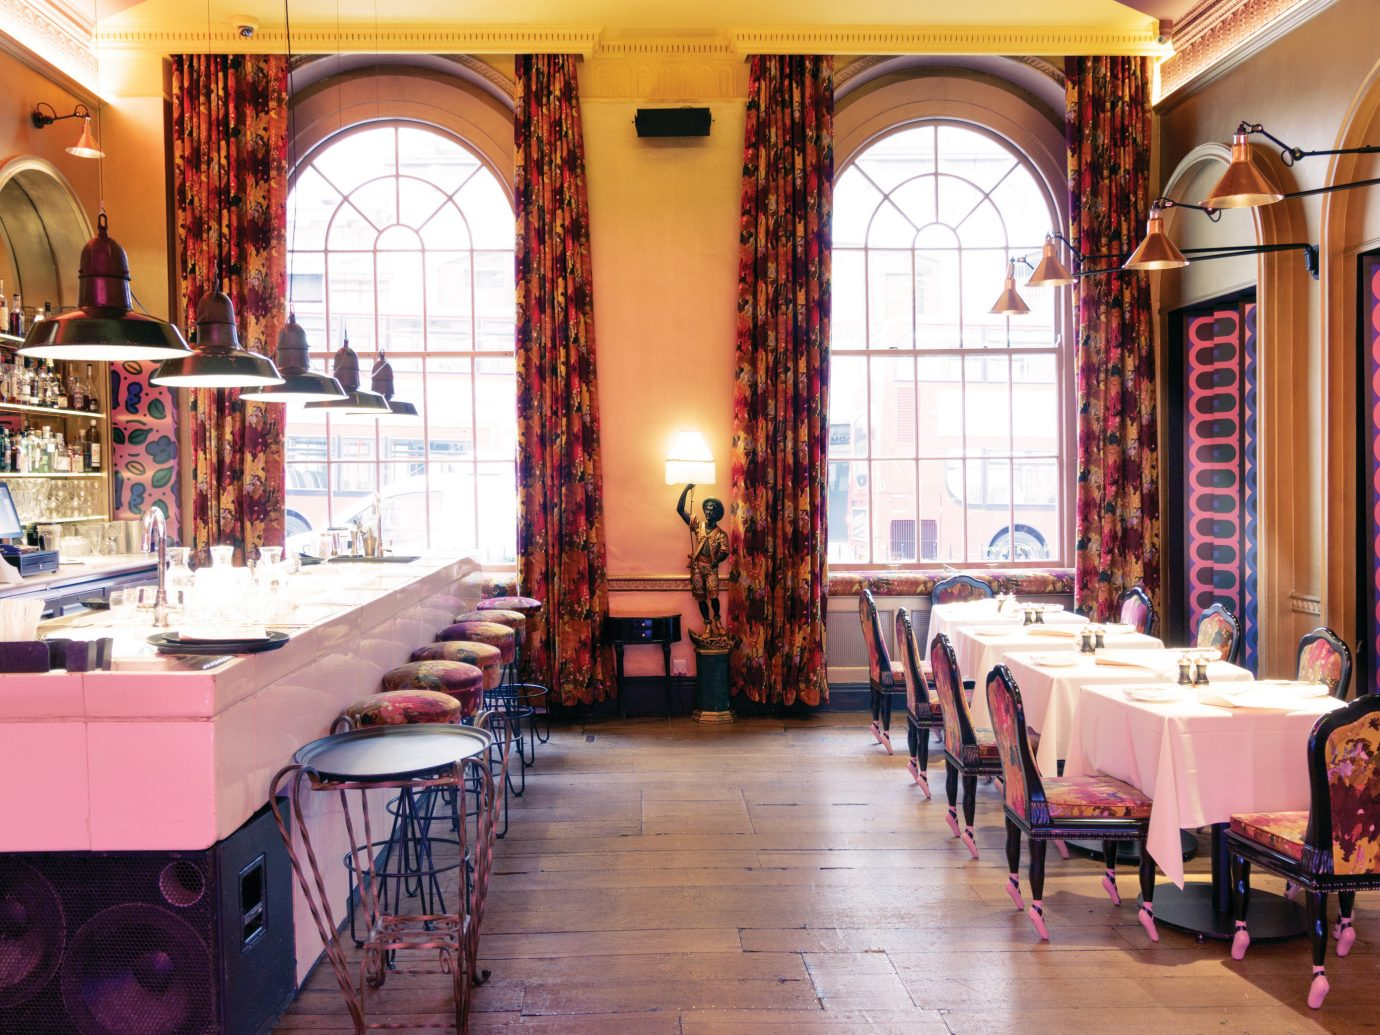 Sketch London dining room and bar